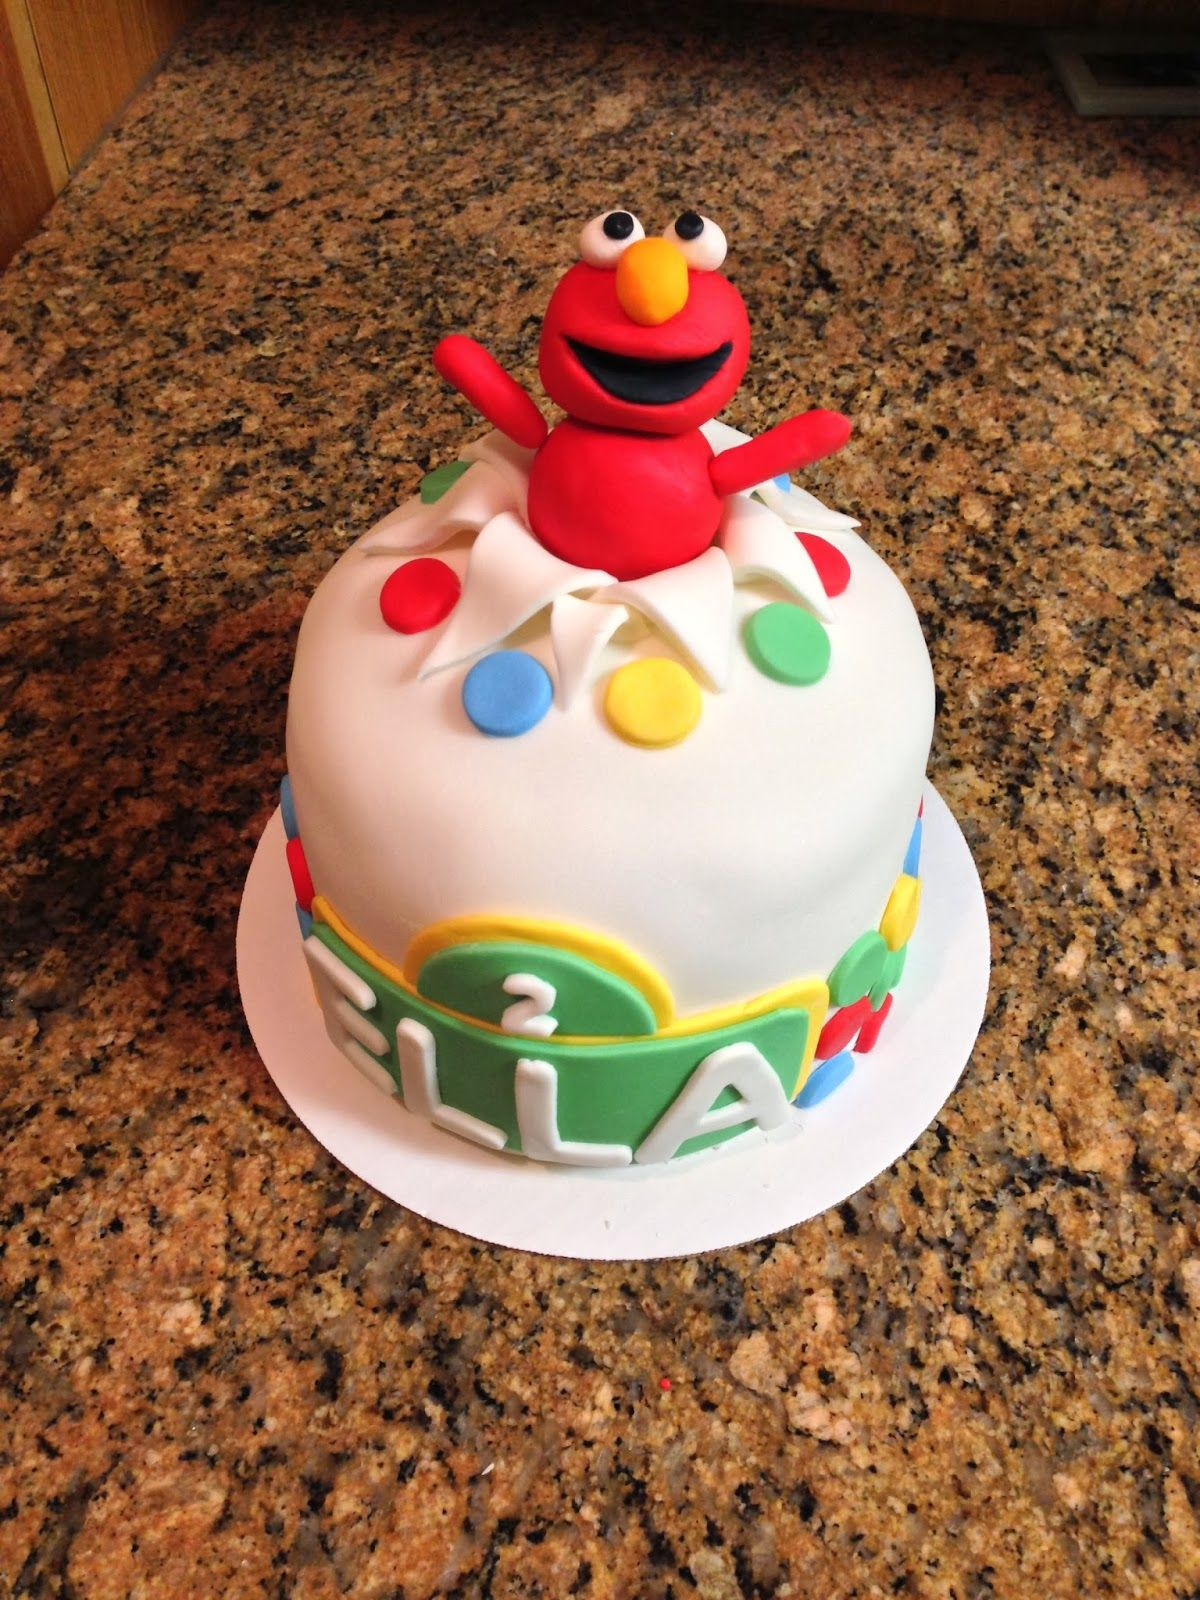 Elmo Surprise Cake Sesame Street cake 7 baking pan 3 layers of